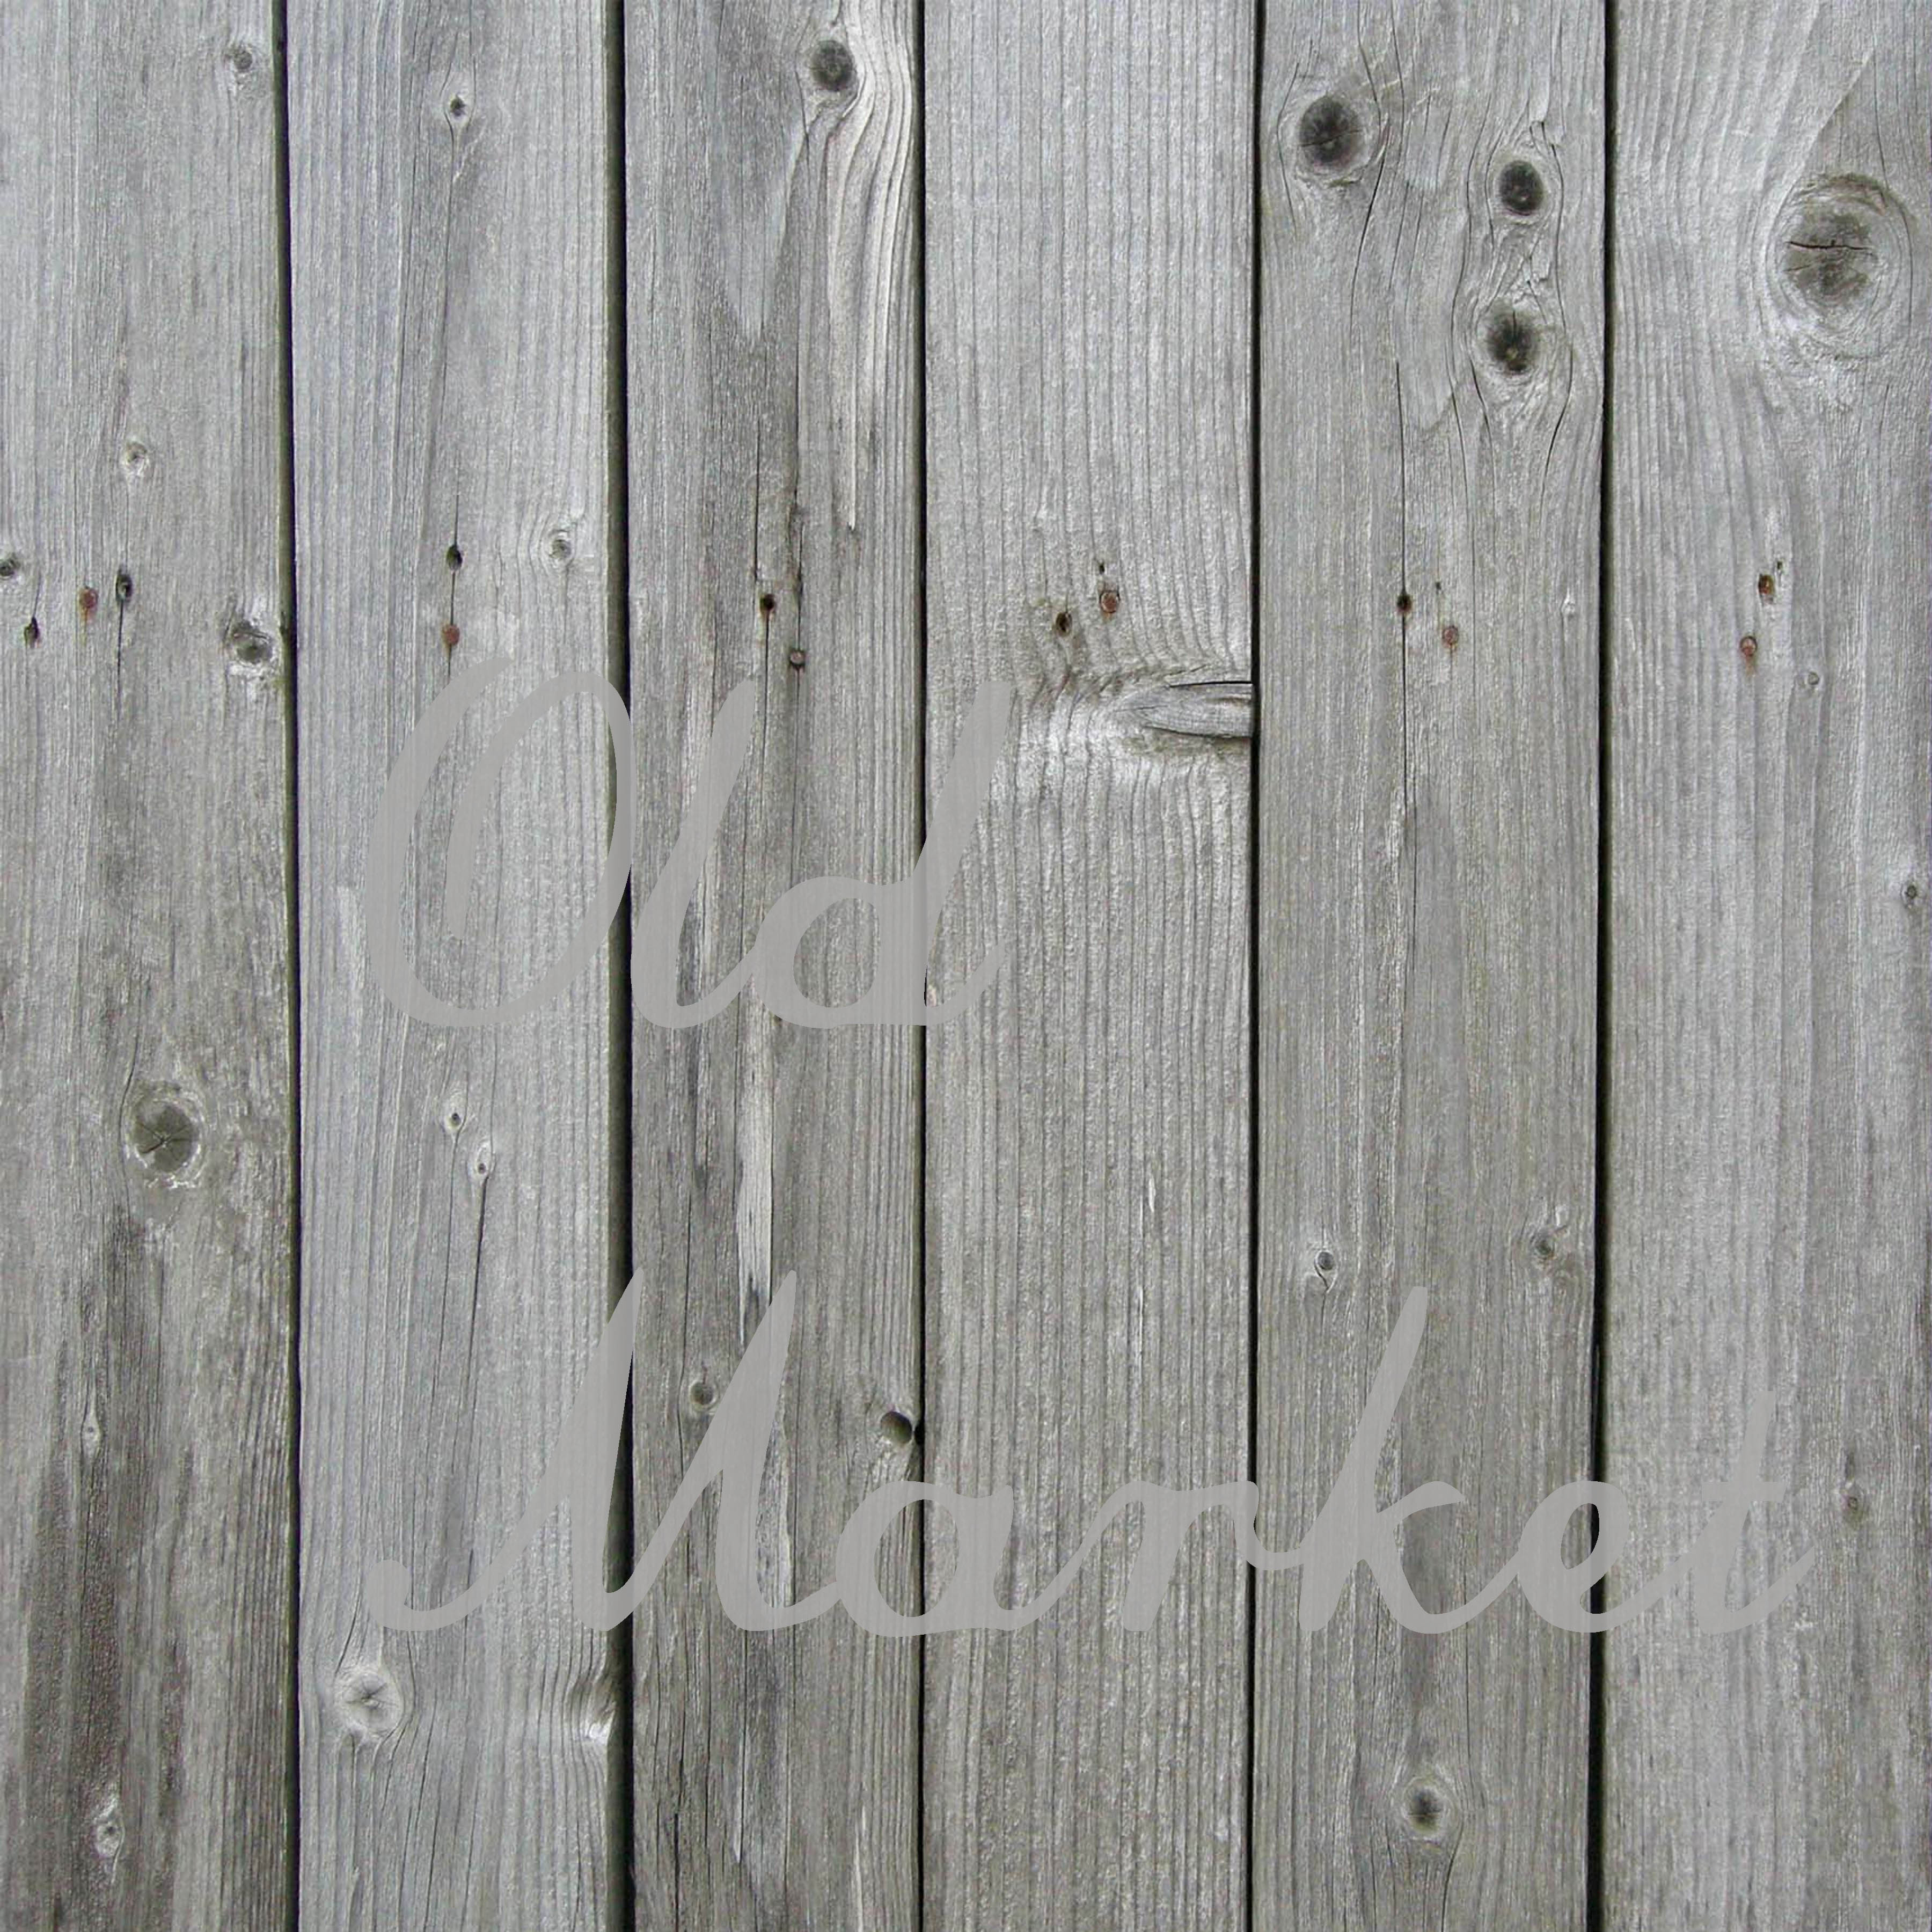 Wood Fence Textures Digital Paper Graphic Backgrounds By oldmarketdesigns - Image 3